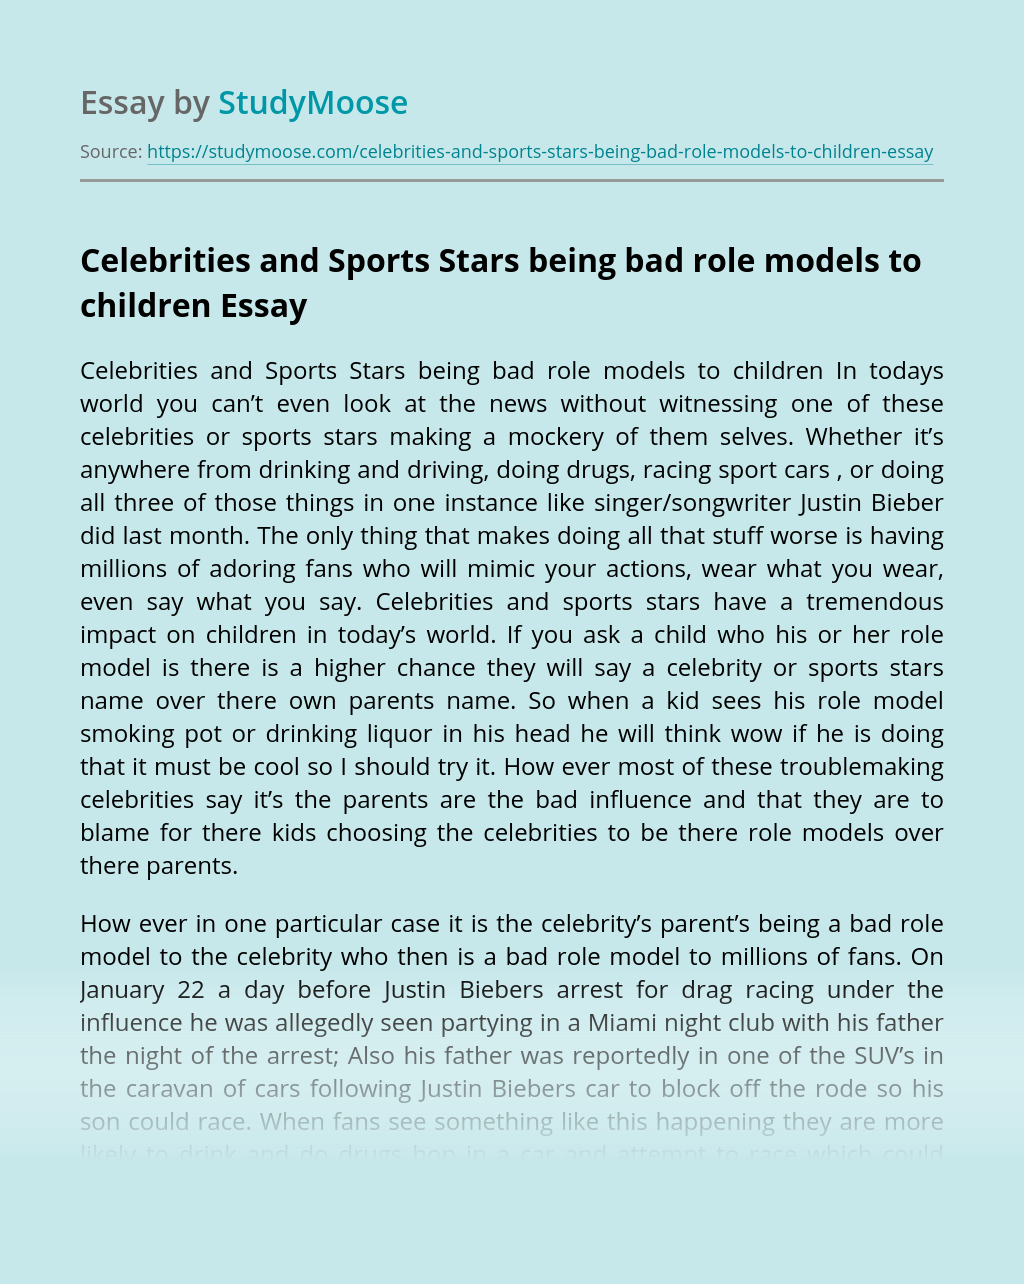 Celebrities and Sports Stars being bad role models to children